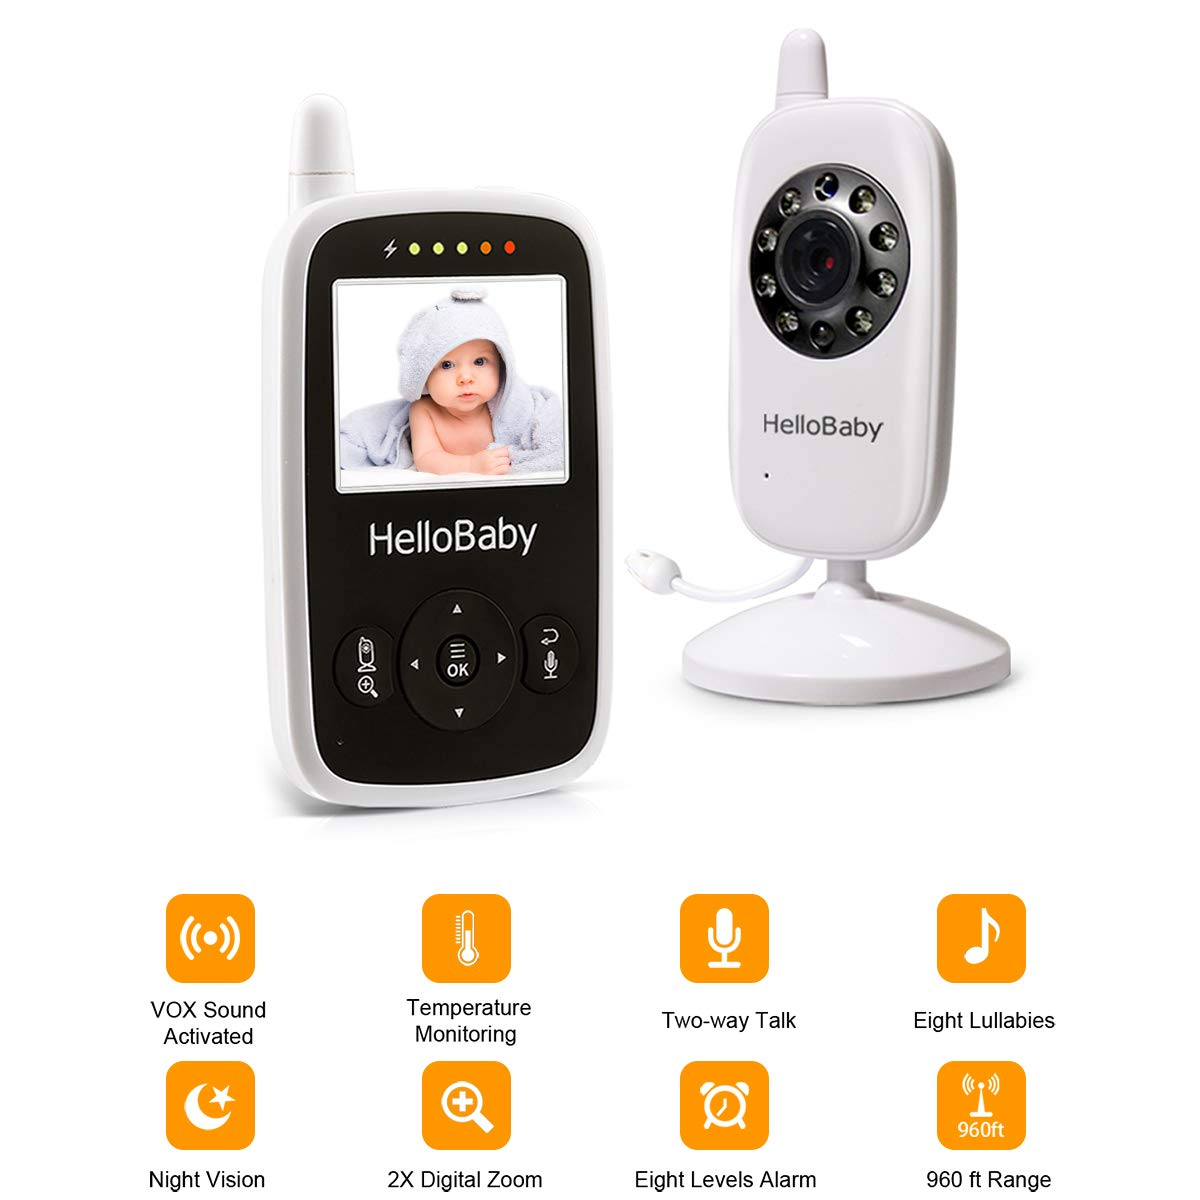 HelloBaby Video Baby Monitor with Camera - Infrared Night Vision, Two-Way Talk Back, Screen, Temperature Detection, Lullabies,Long Range, Private Data Protection and High Capacity Battery by HelloBaby (Image #2)